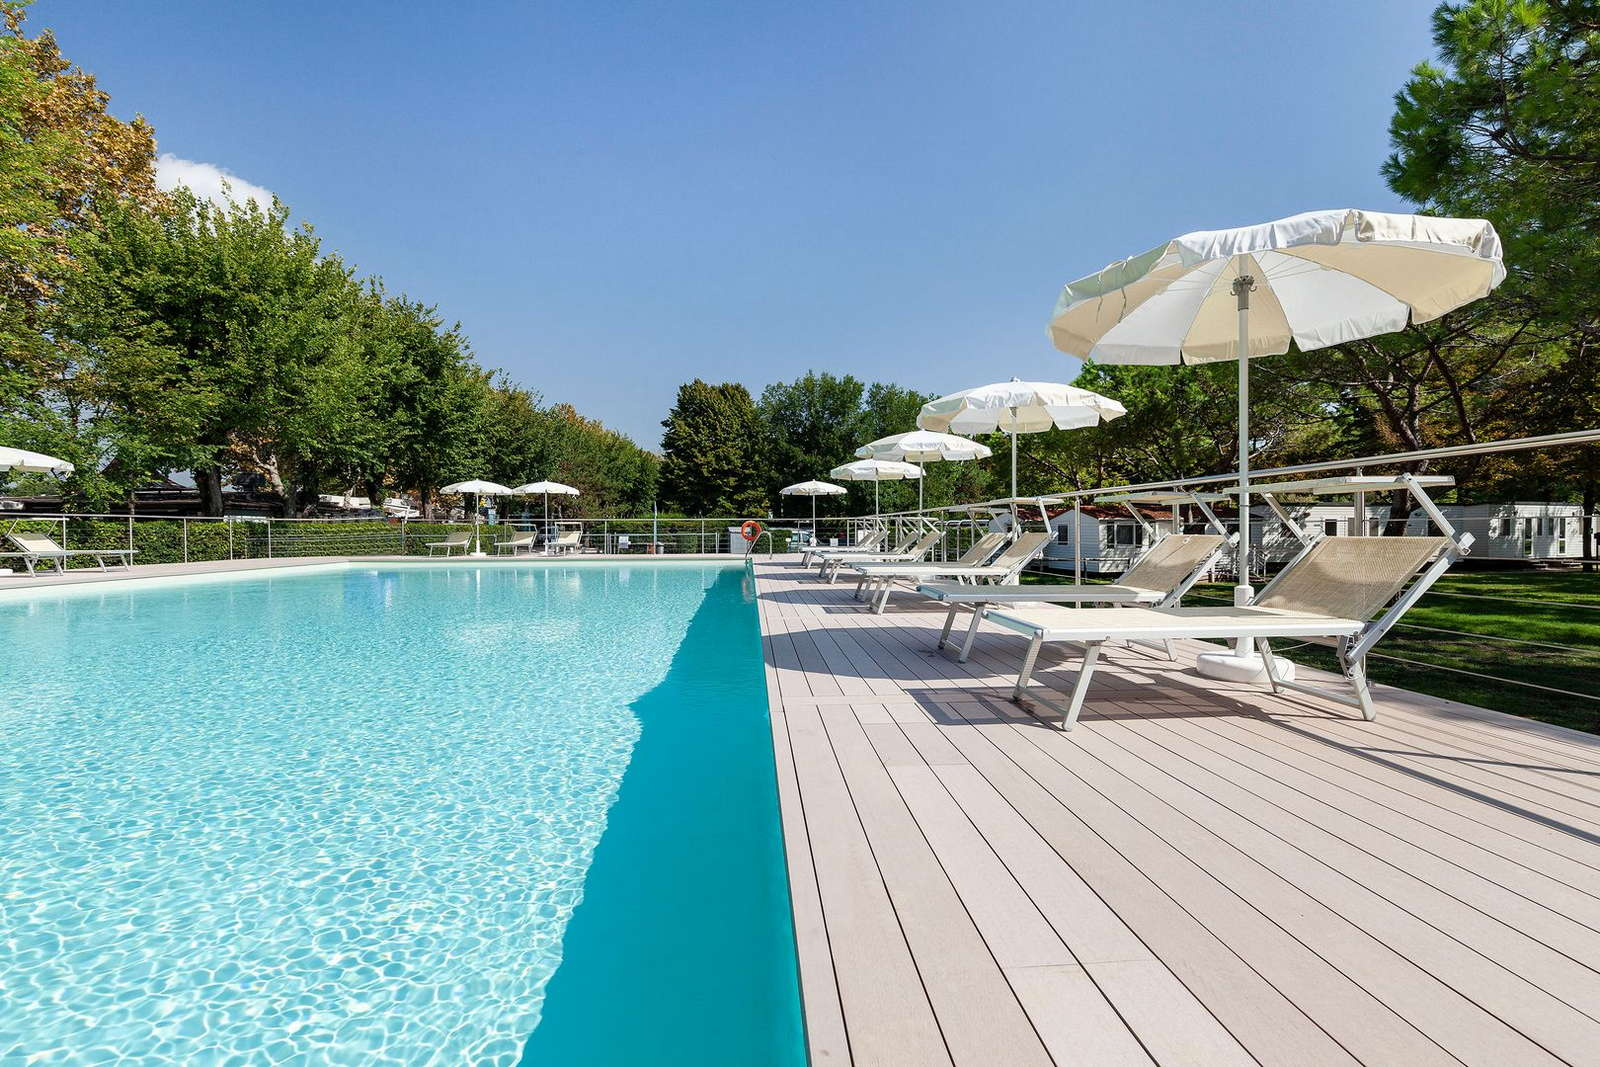 Camping Fusina swimming pool in Venice